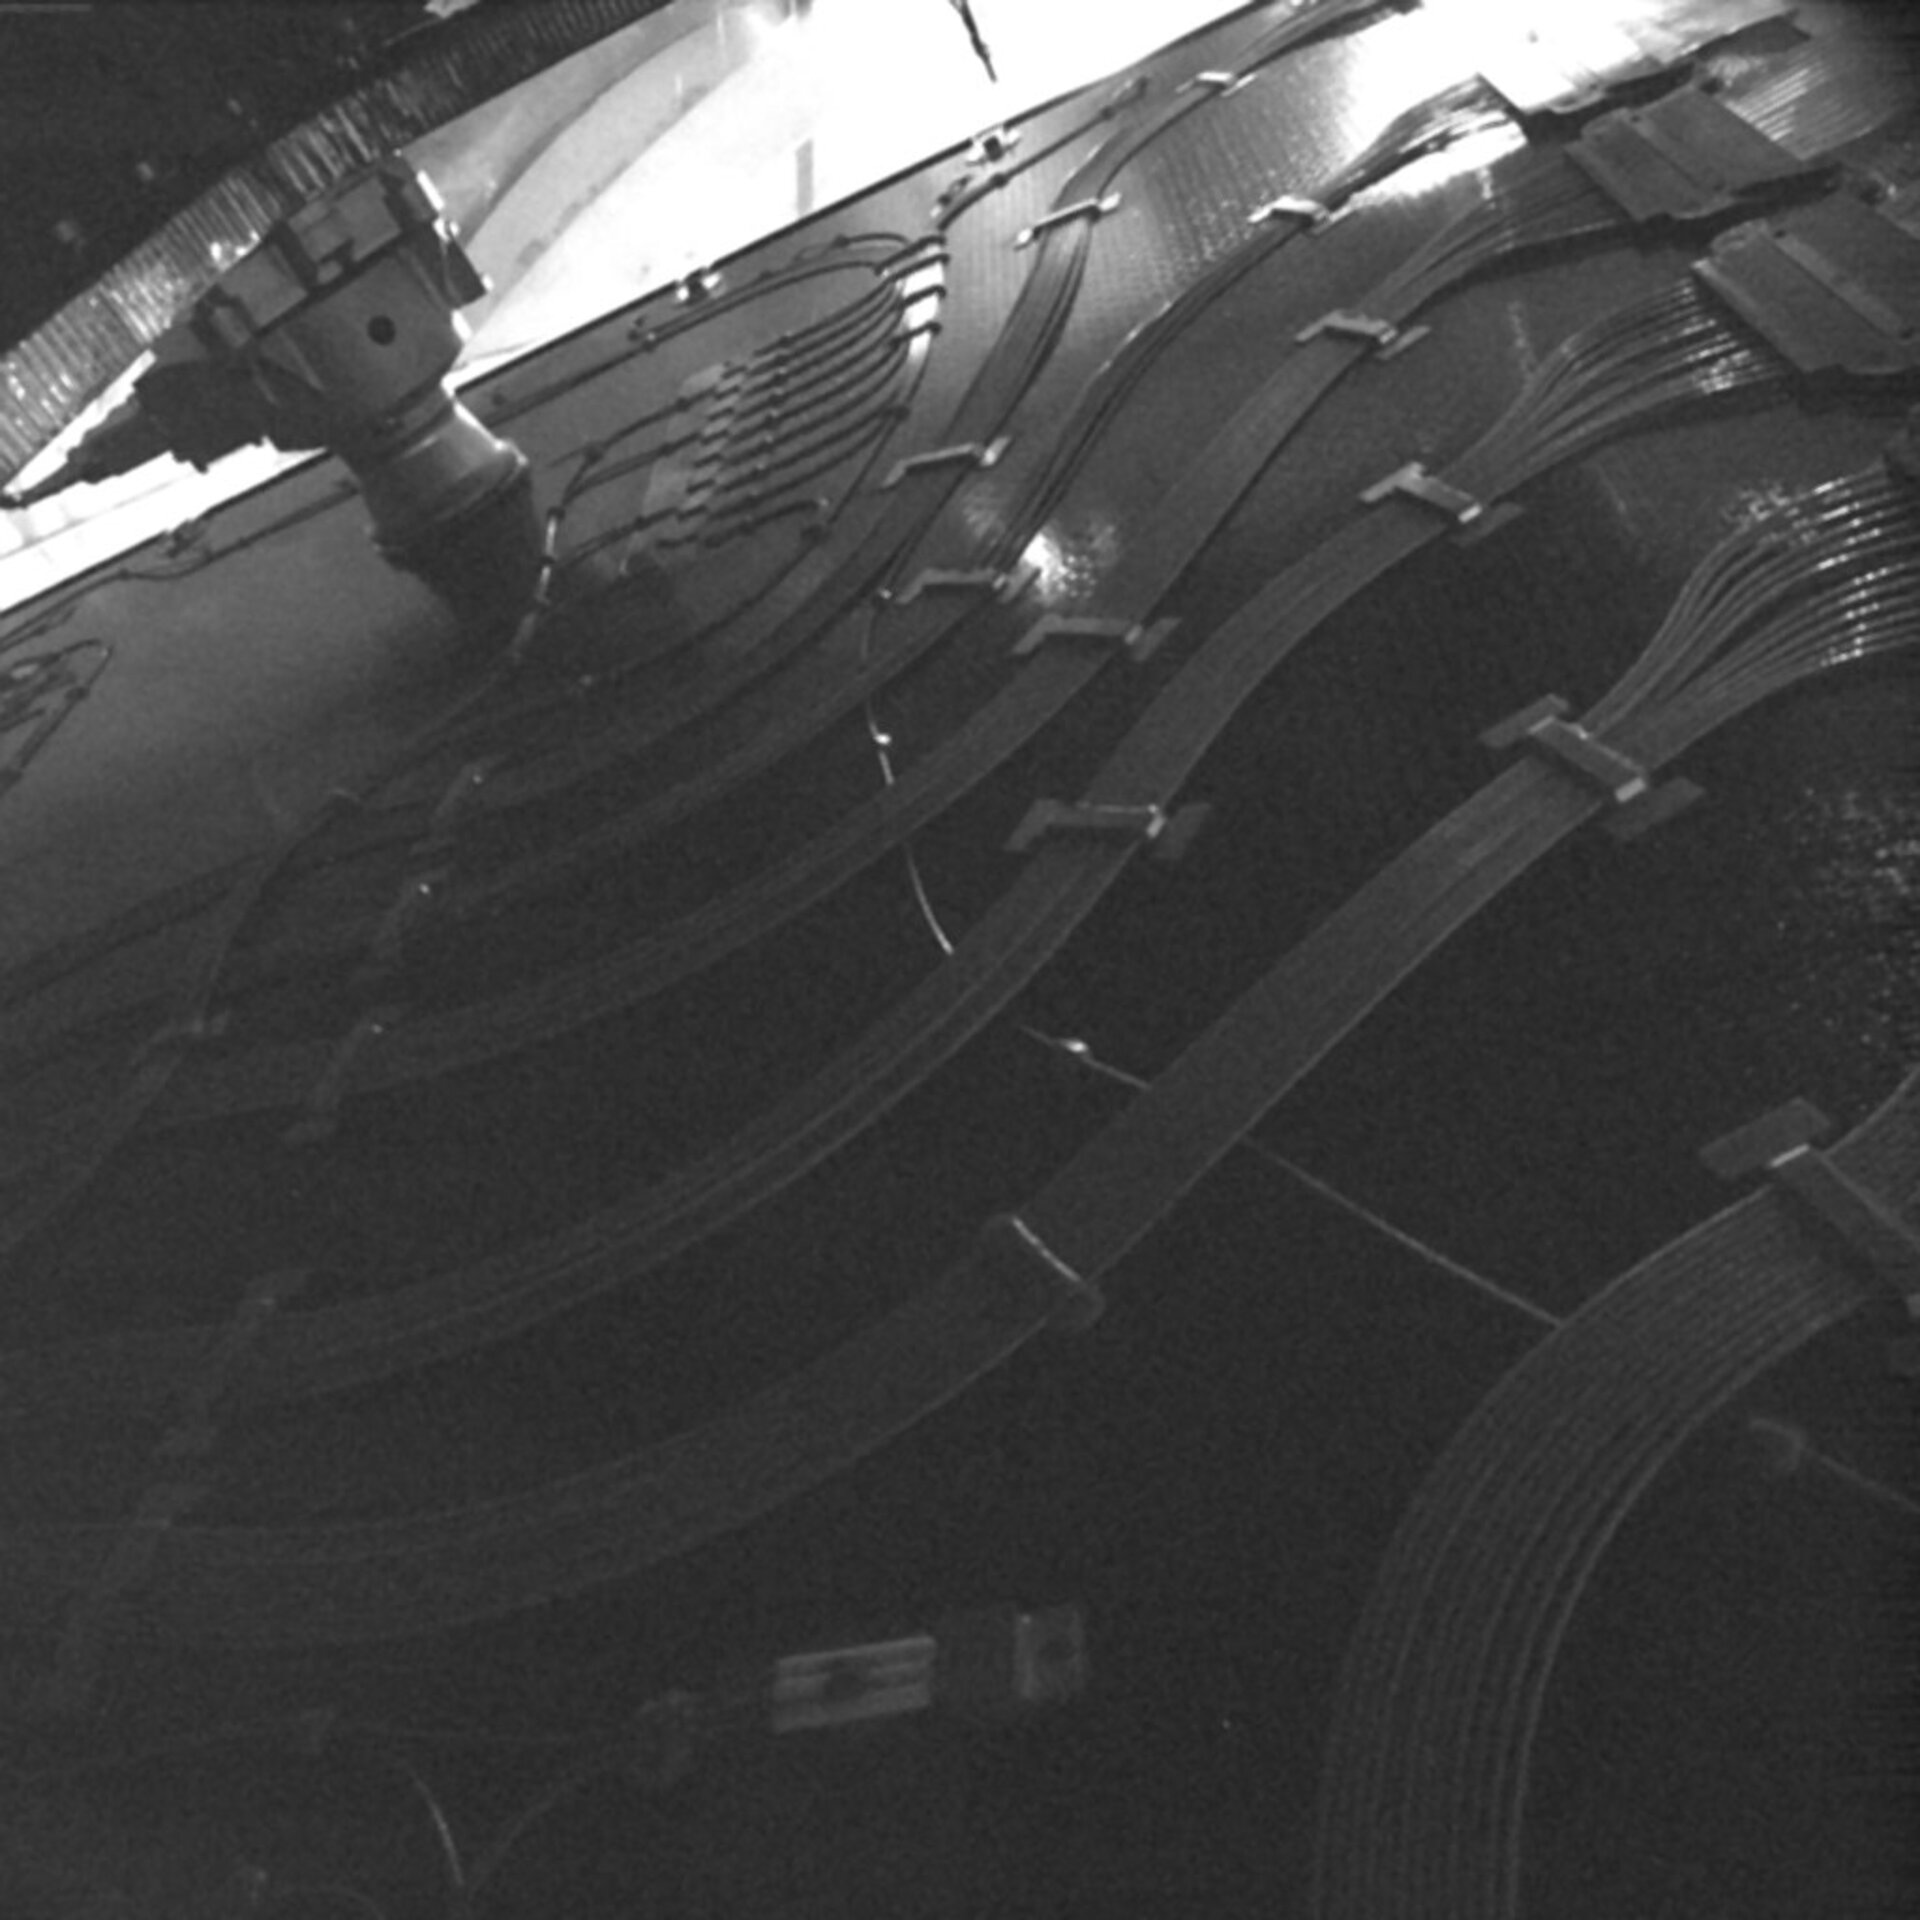 BepiColombo monitoring camera test image